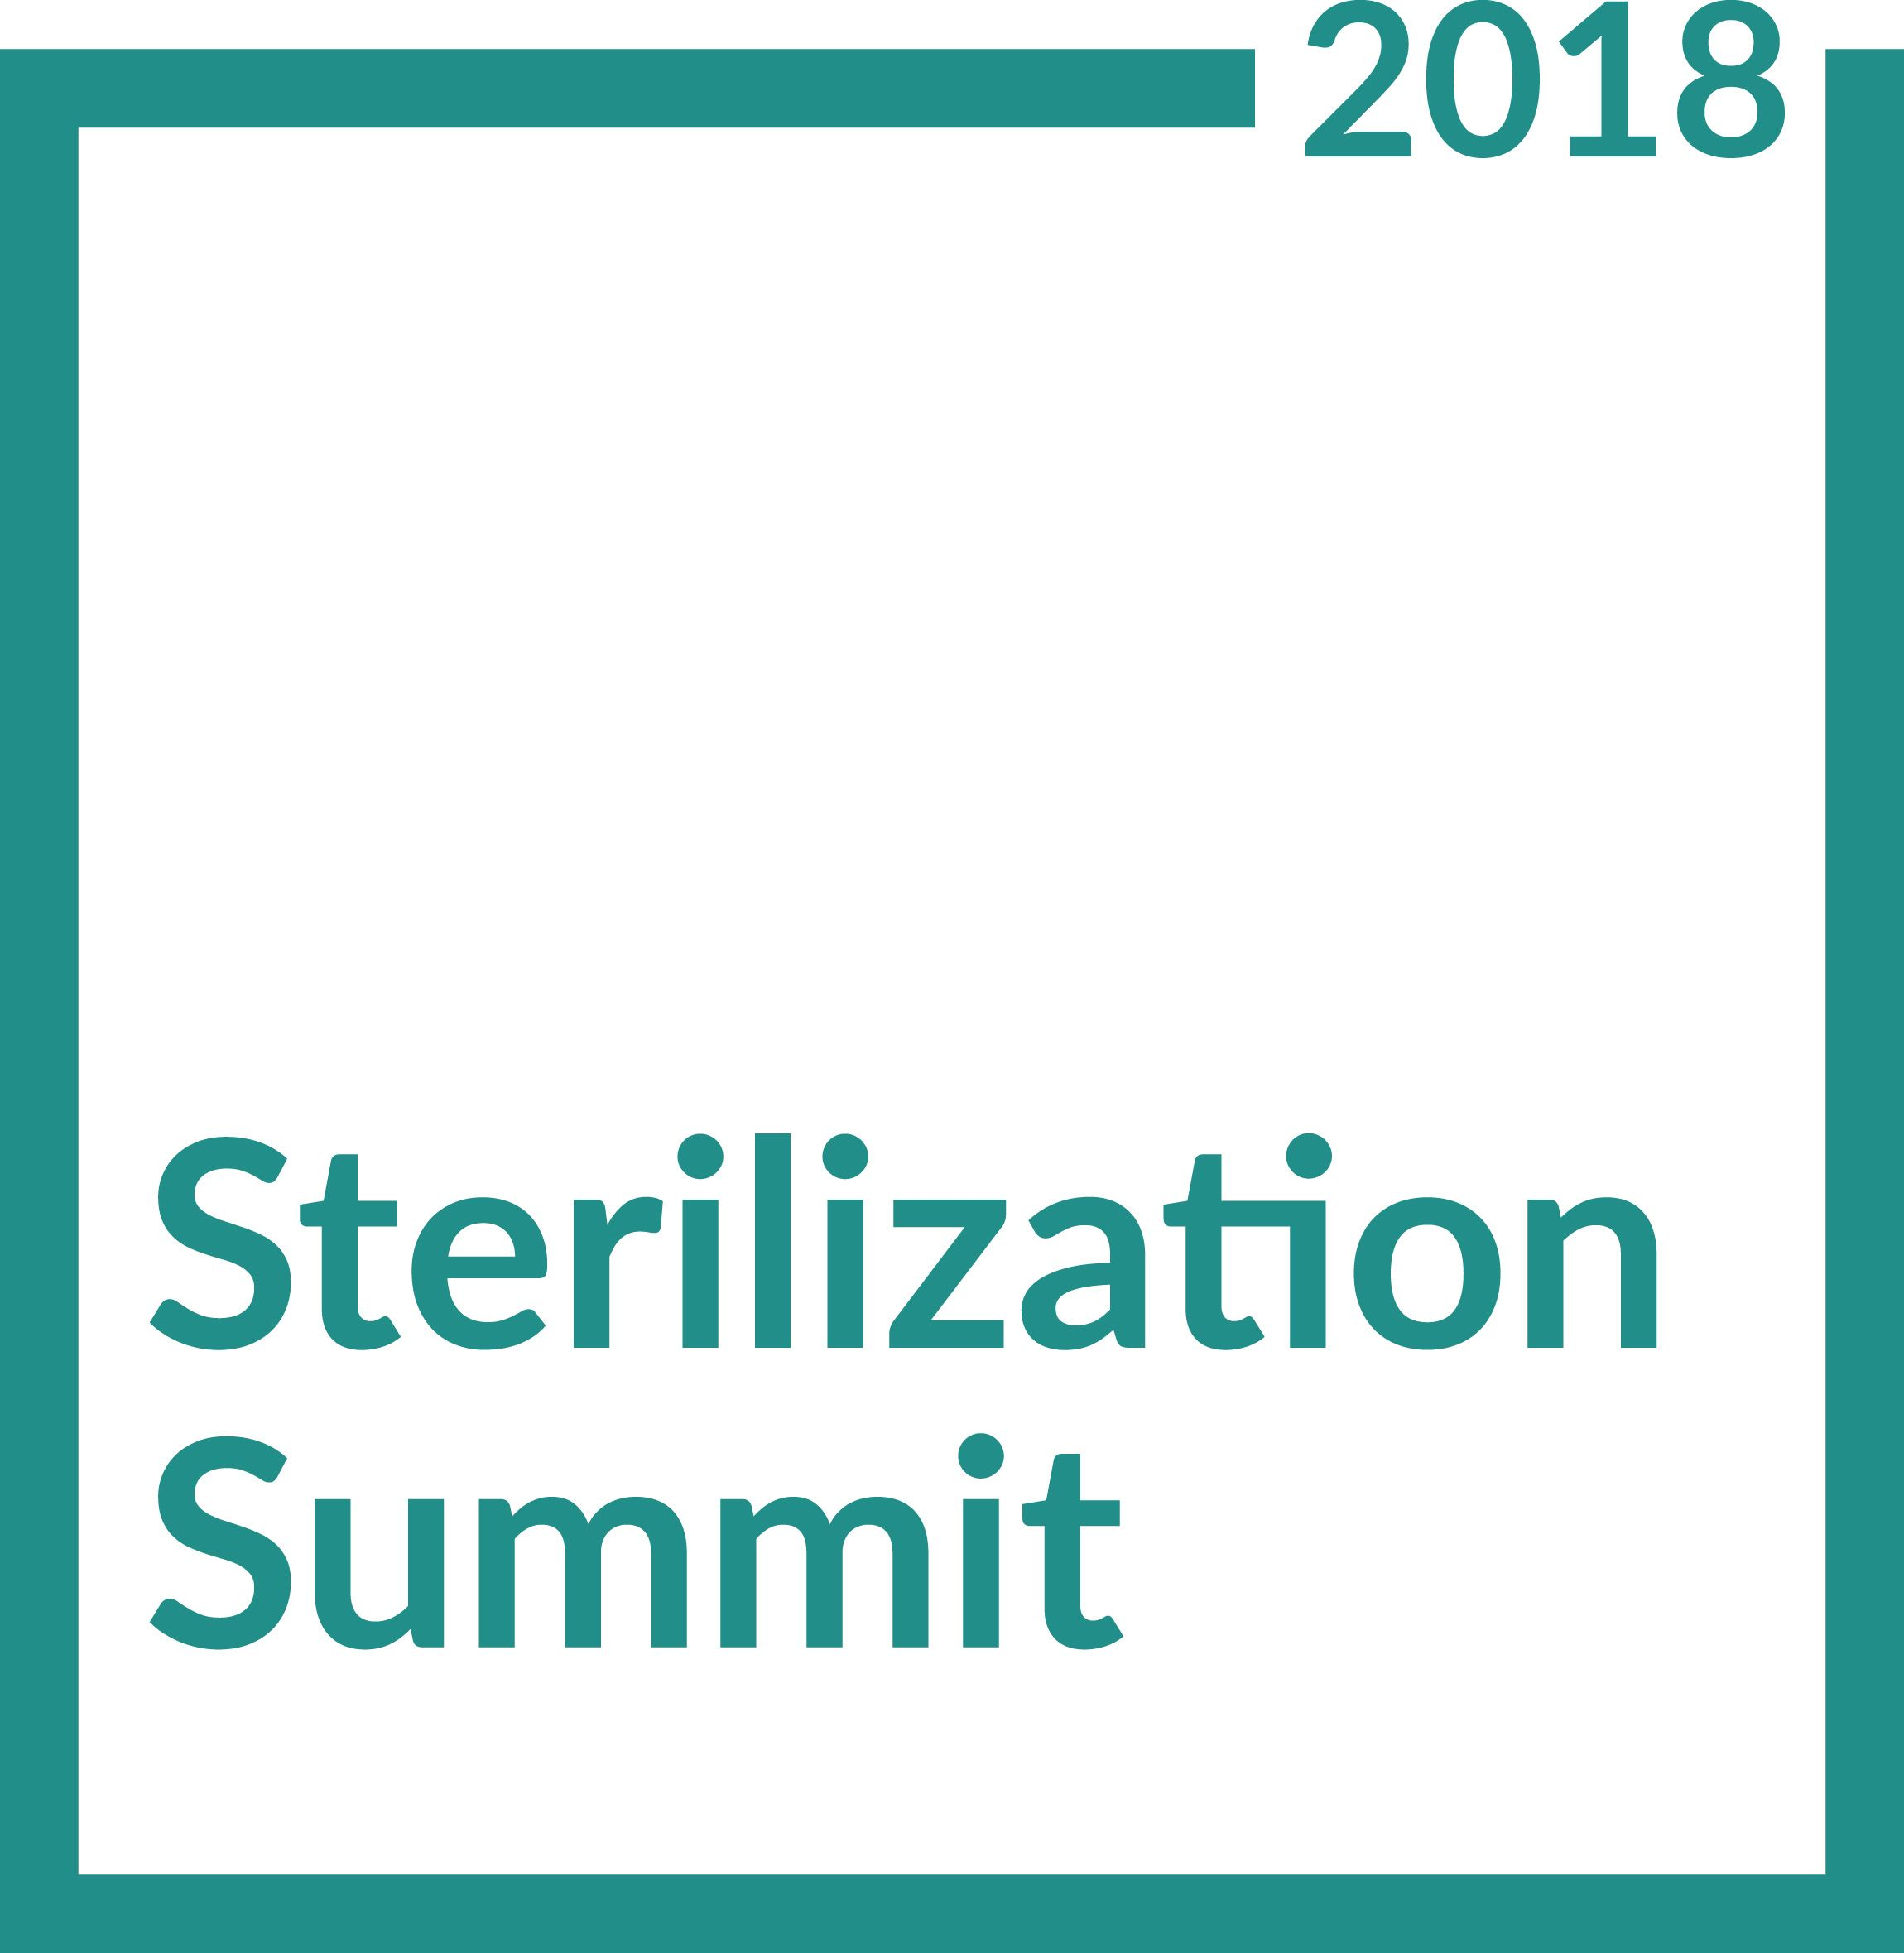 Sterilization Summit 2018